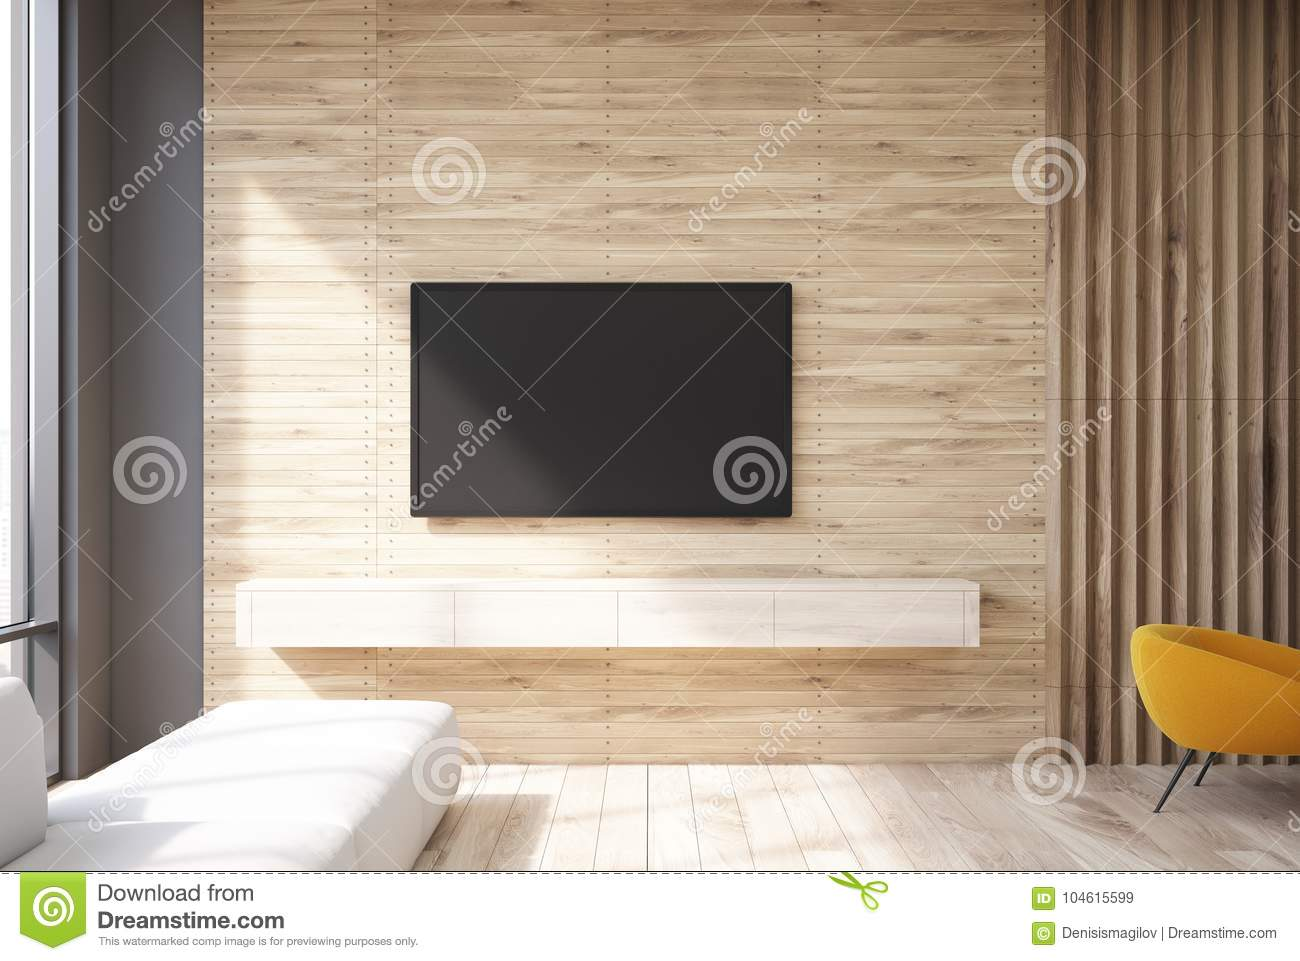 Wooden living room tv set and sofa